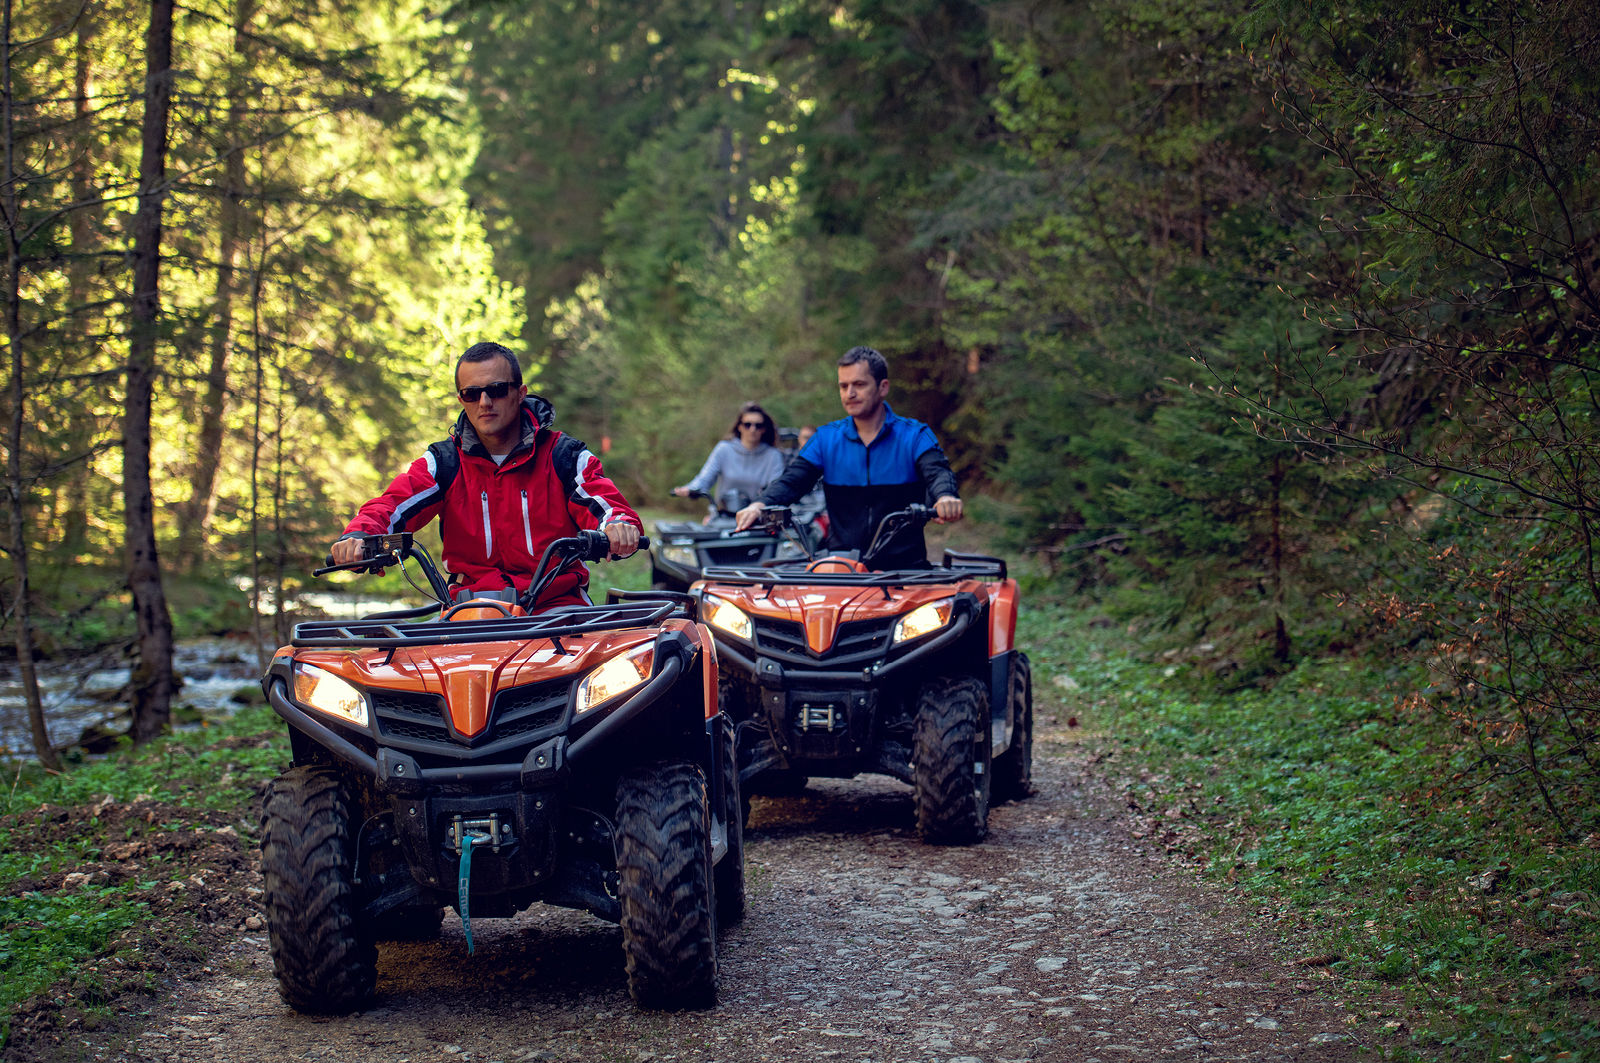 Cool & Fun Outdoor Tours Around the United States